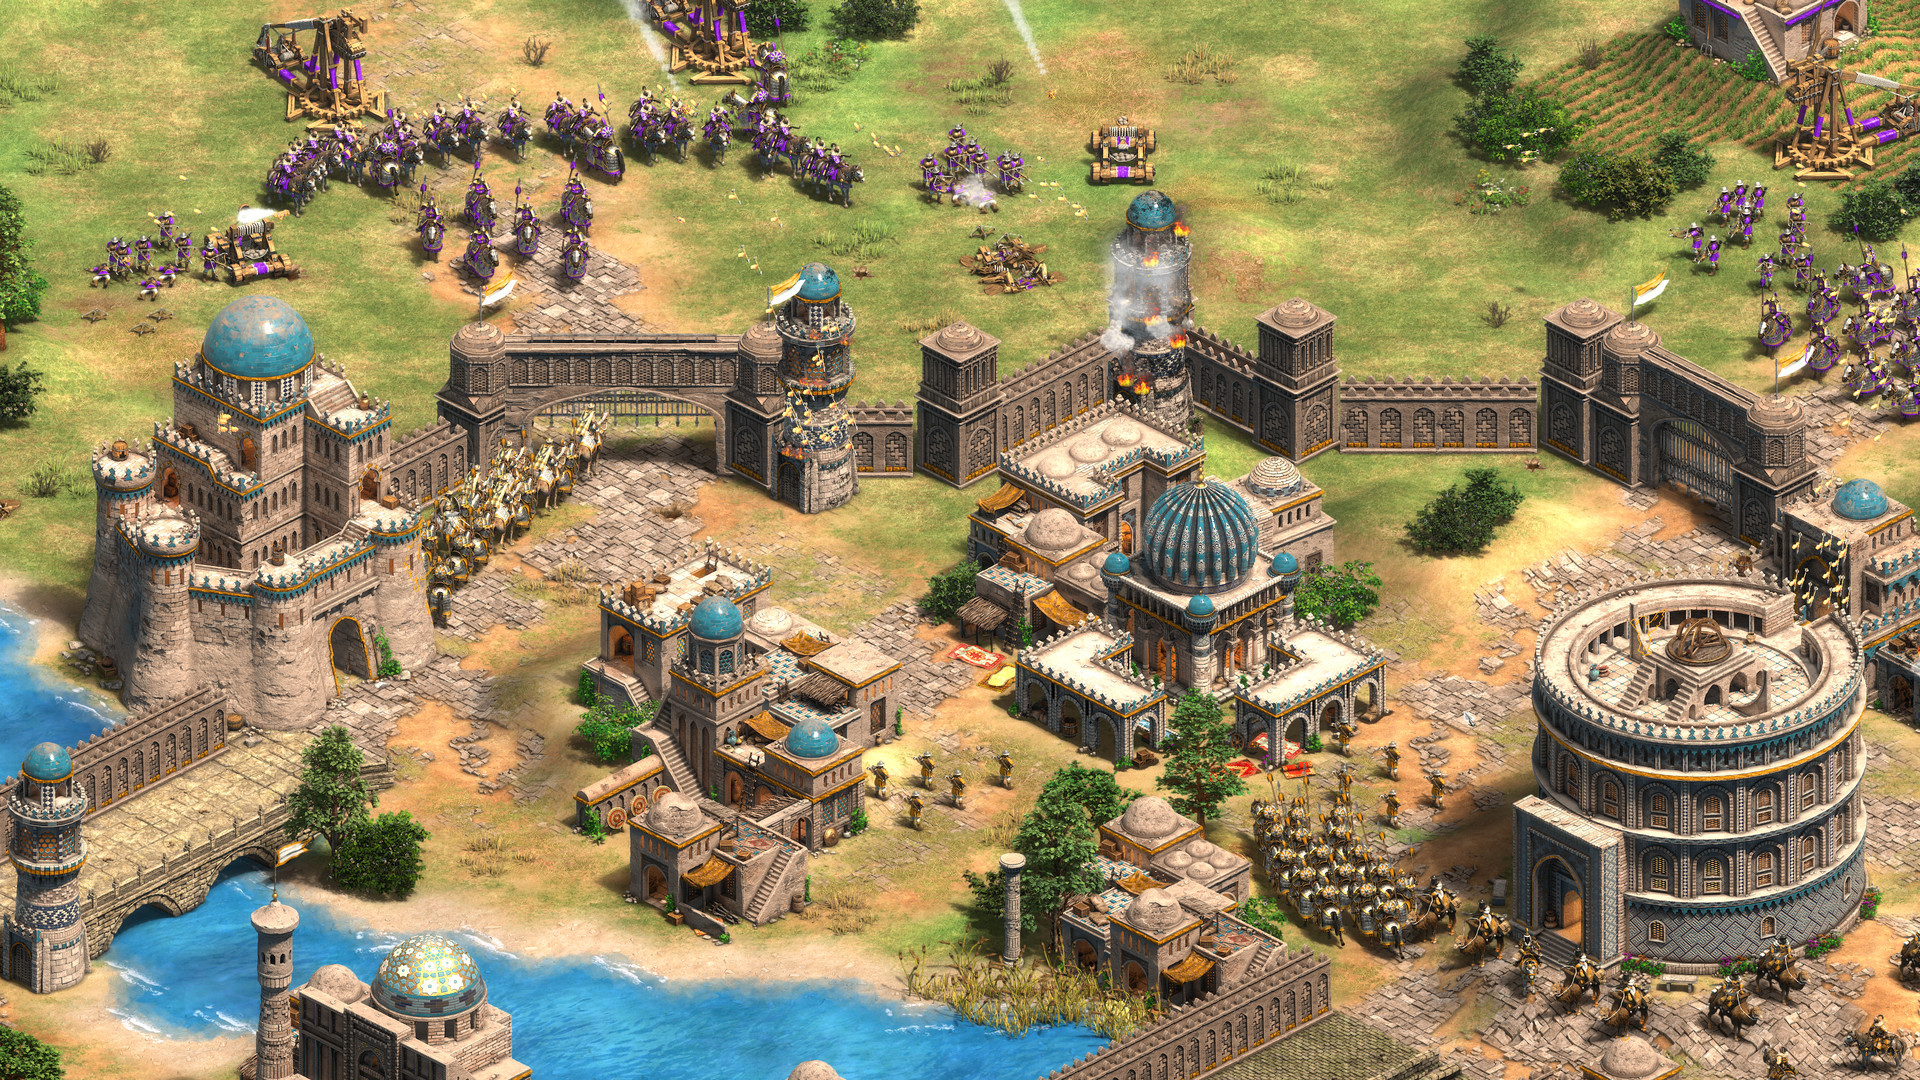 Age of Empires II: Definitive Edition Review - Gamereactor